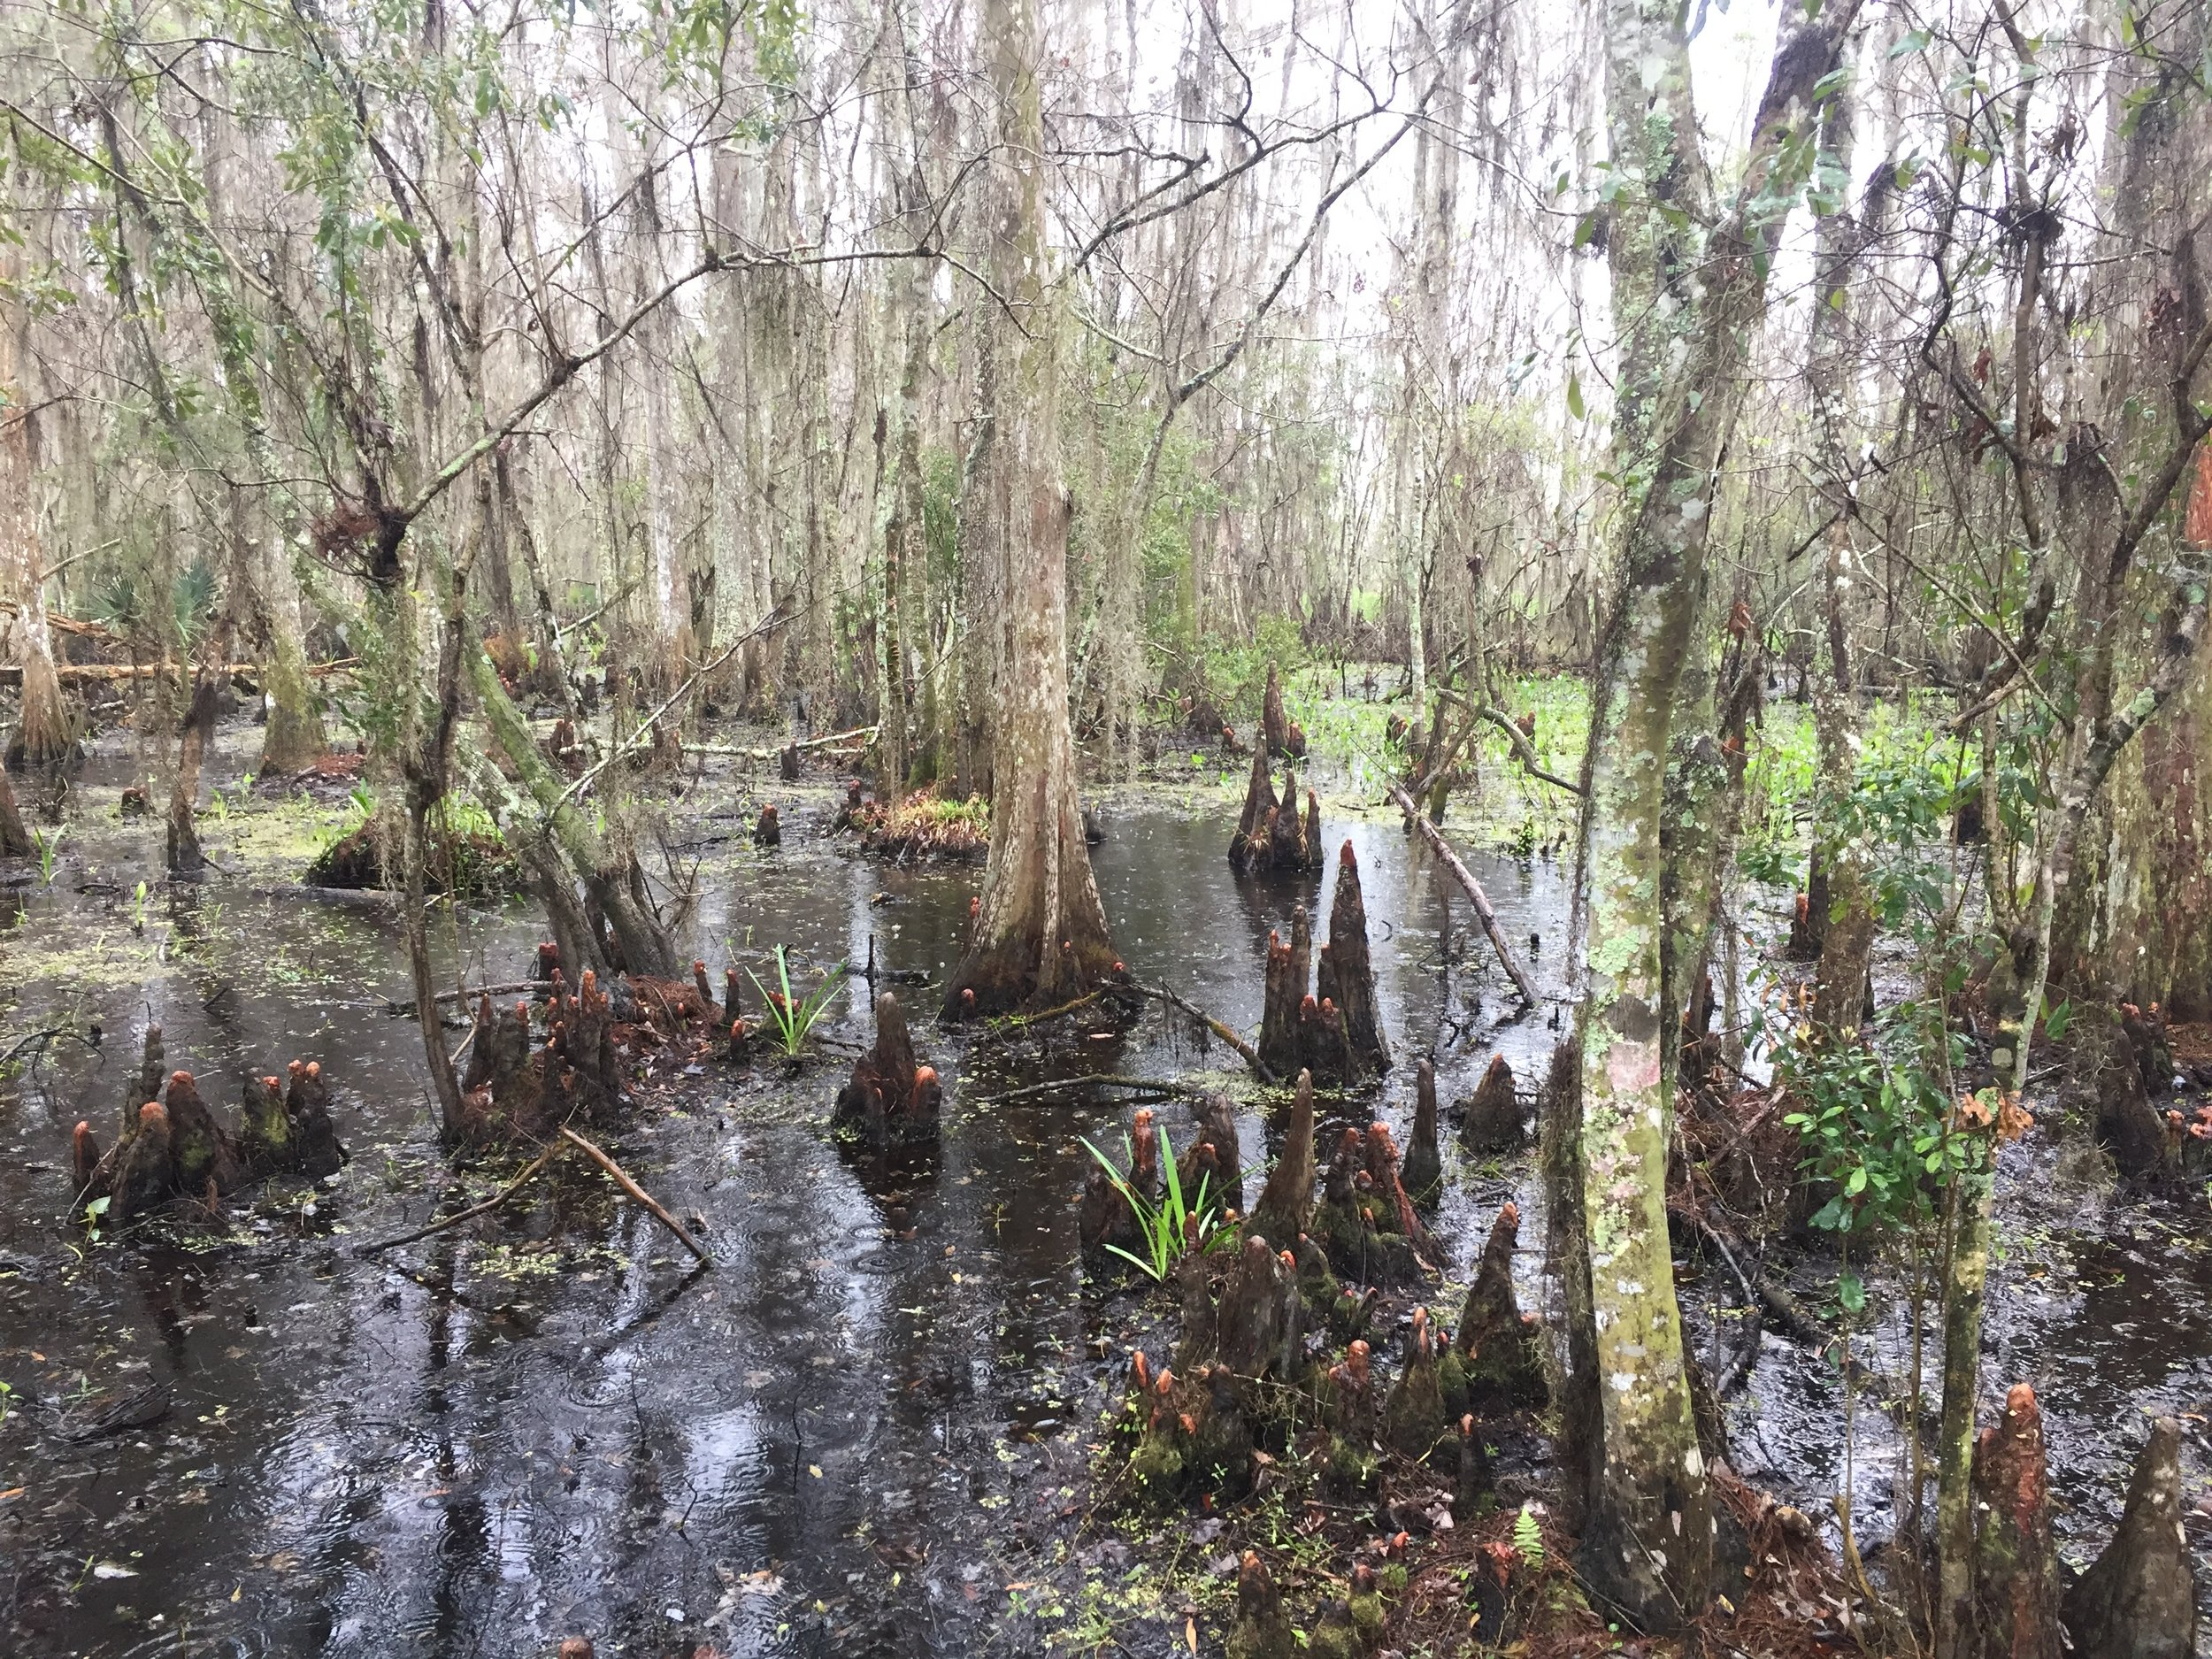 Hiking in the swamps near New Orleans.